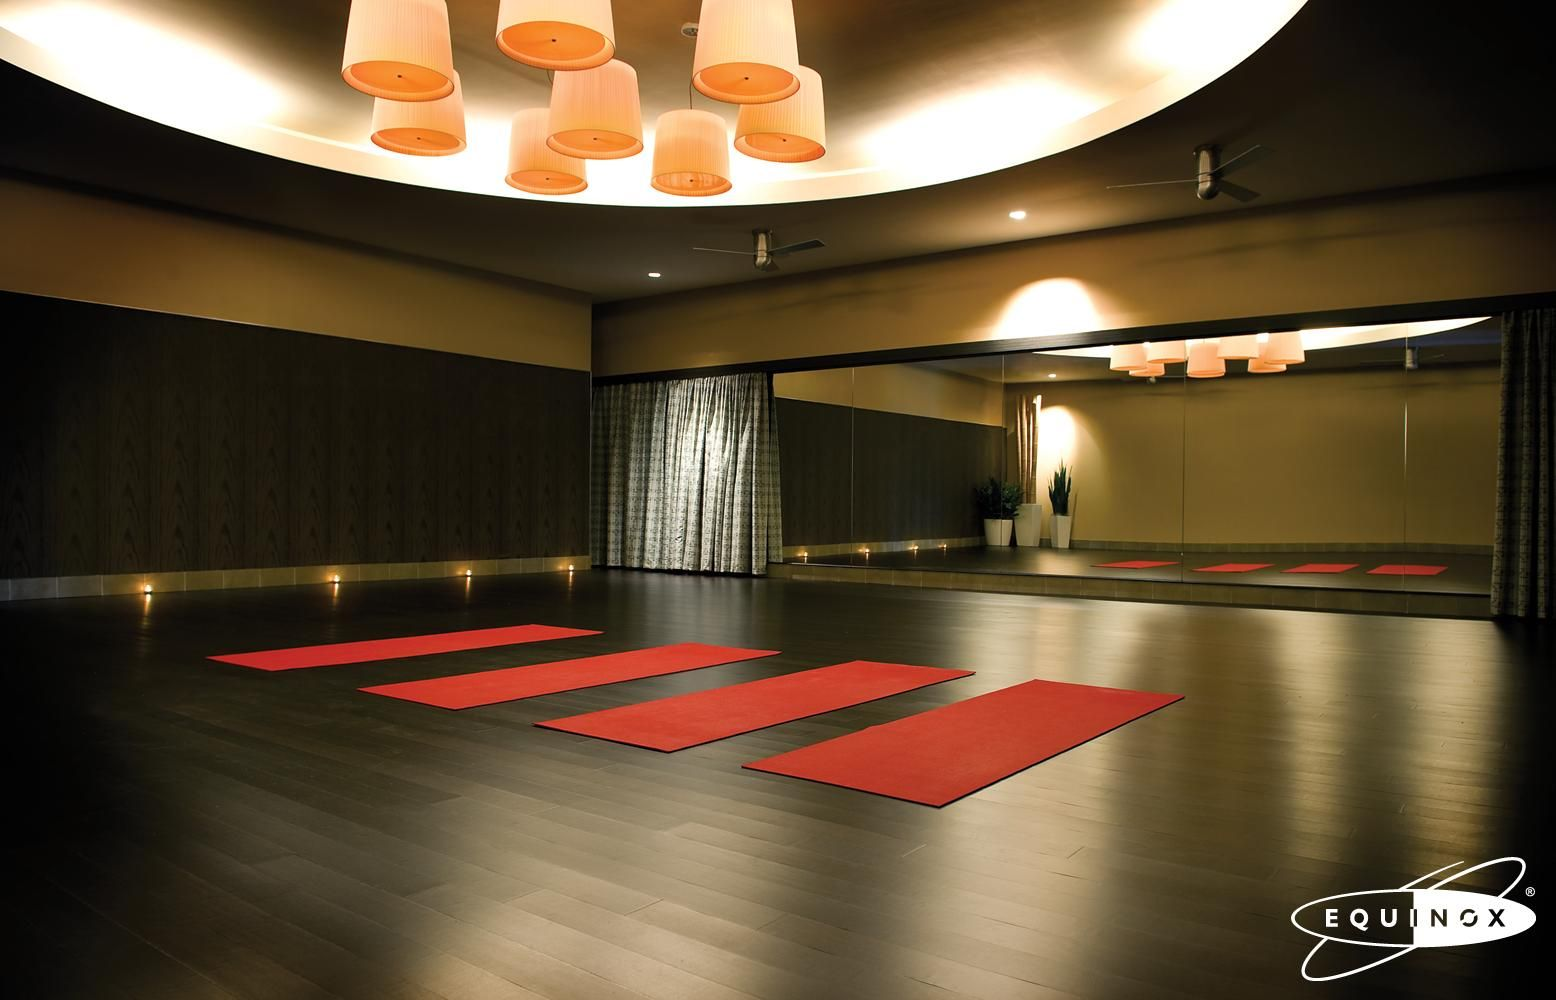 Yoga Room Love The Ceiling Lighting Flooring I Think A Chevron Pattern Flooring Would Be Cool Fitnes